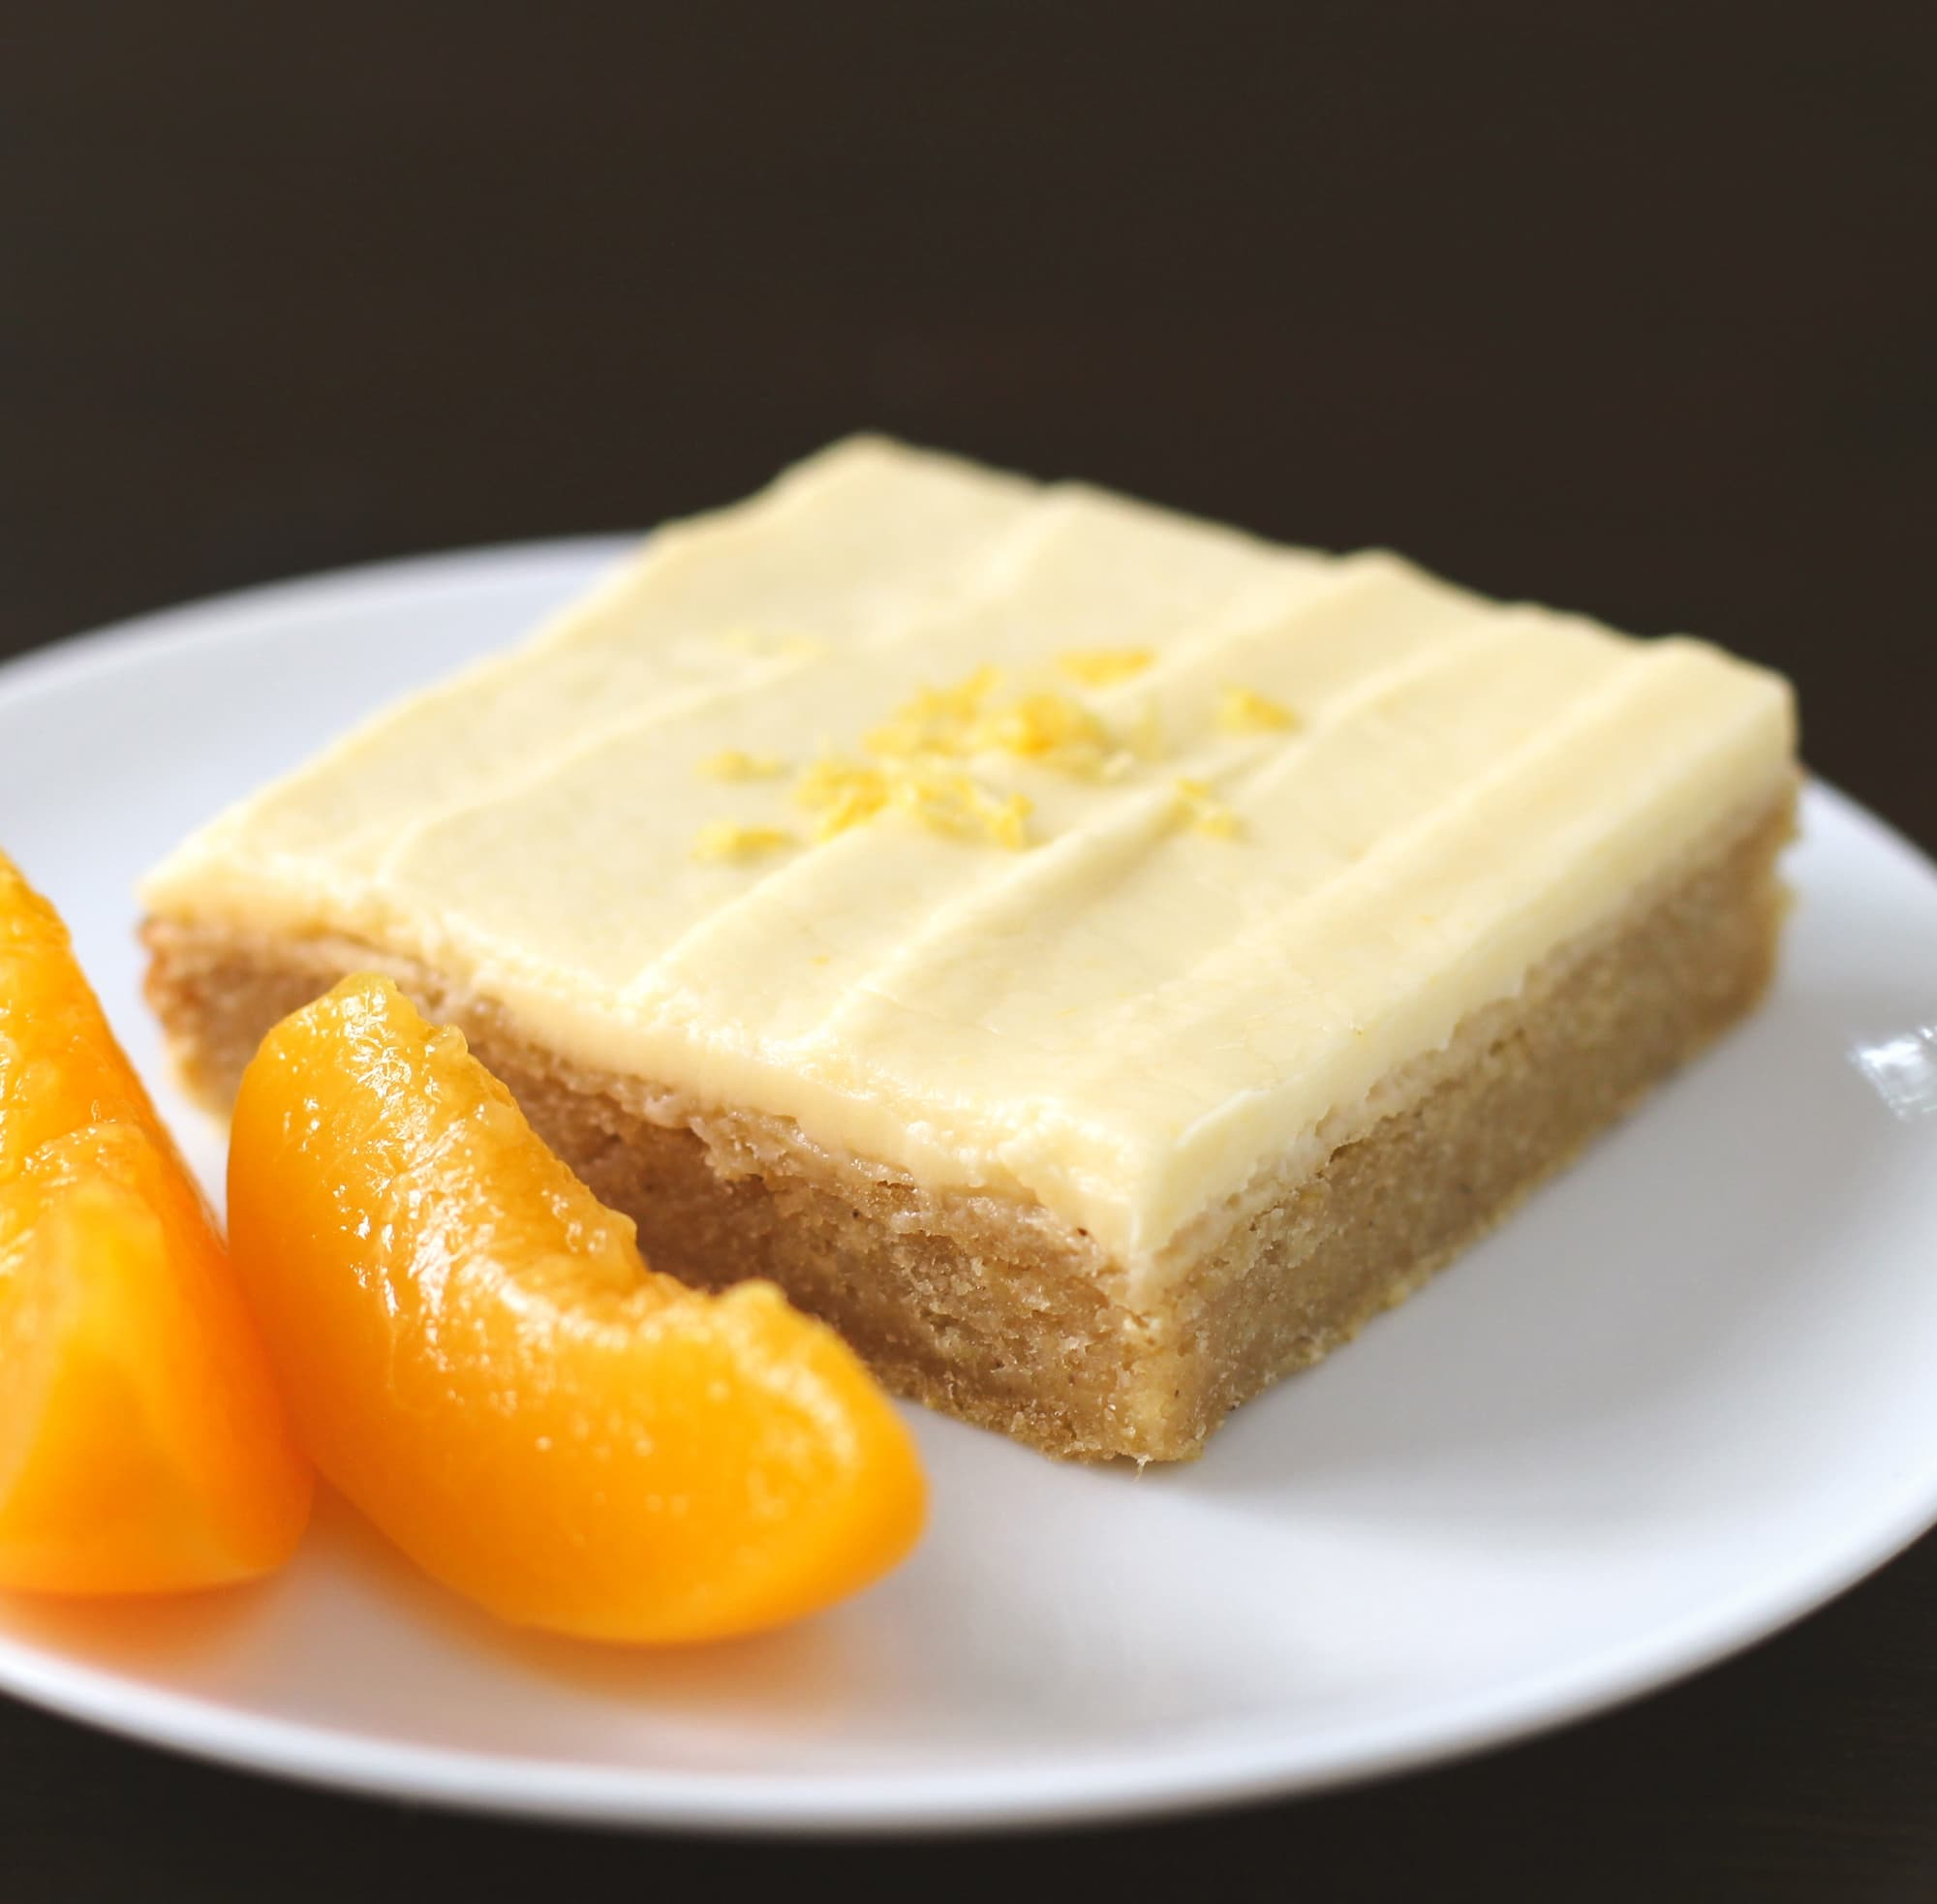 Healthy Lemony Peach Blondies with Peach Frosting (refined sugar free, gluten free, vegan) - Healthy Dessert Recipes at Desserts with Benefits